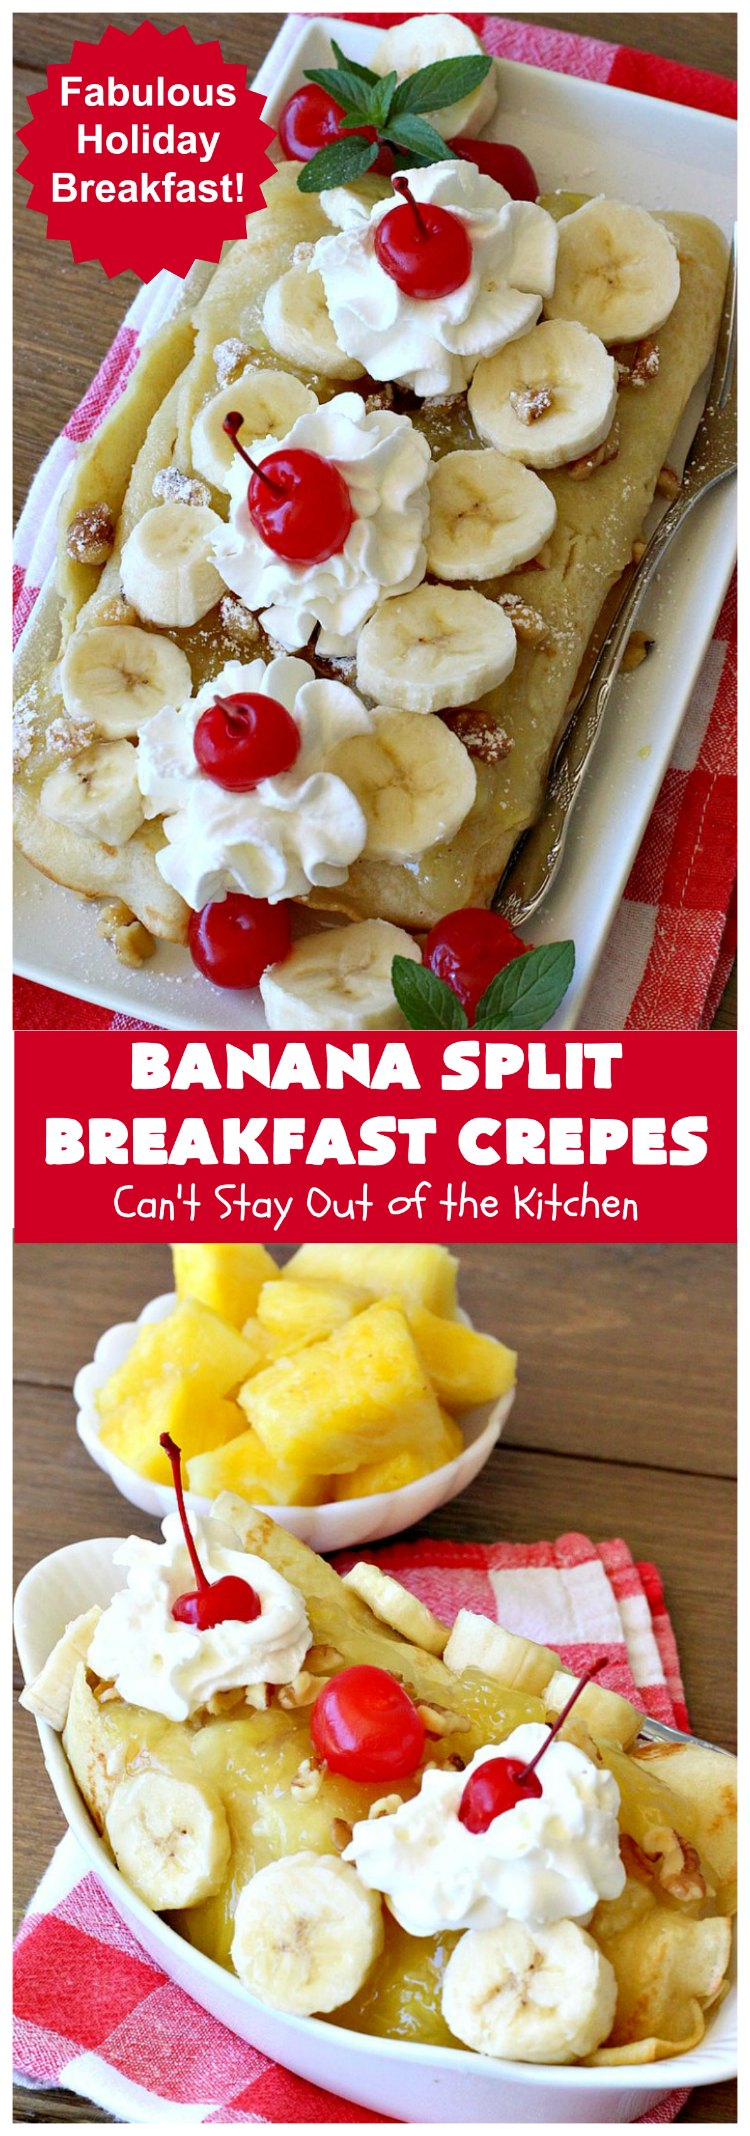 Banana Split Breakfast Crêpes | Can't Stay Out of the Kitchen | these spectacular #breakfast #crêpes will rock your world! They're filling with a #pineapple filling & sliced #bananas. Then garnished with #walnuts, bananas #MaraschinoCherries & whipped cream. Perfect for a company or #holiday breakfast. #BreakfastCrêpes #BananaSplit #BananaSplitBreakfastCrêpes